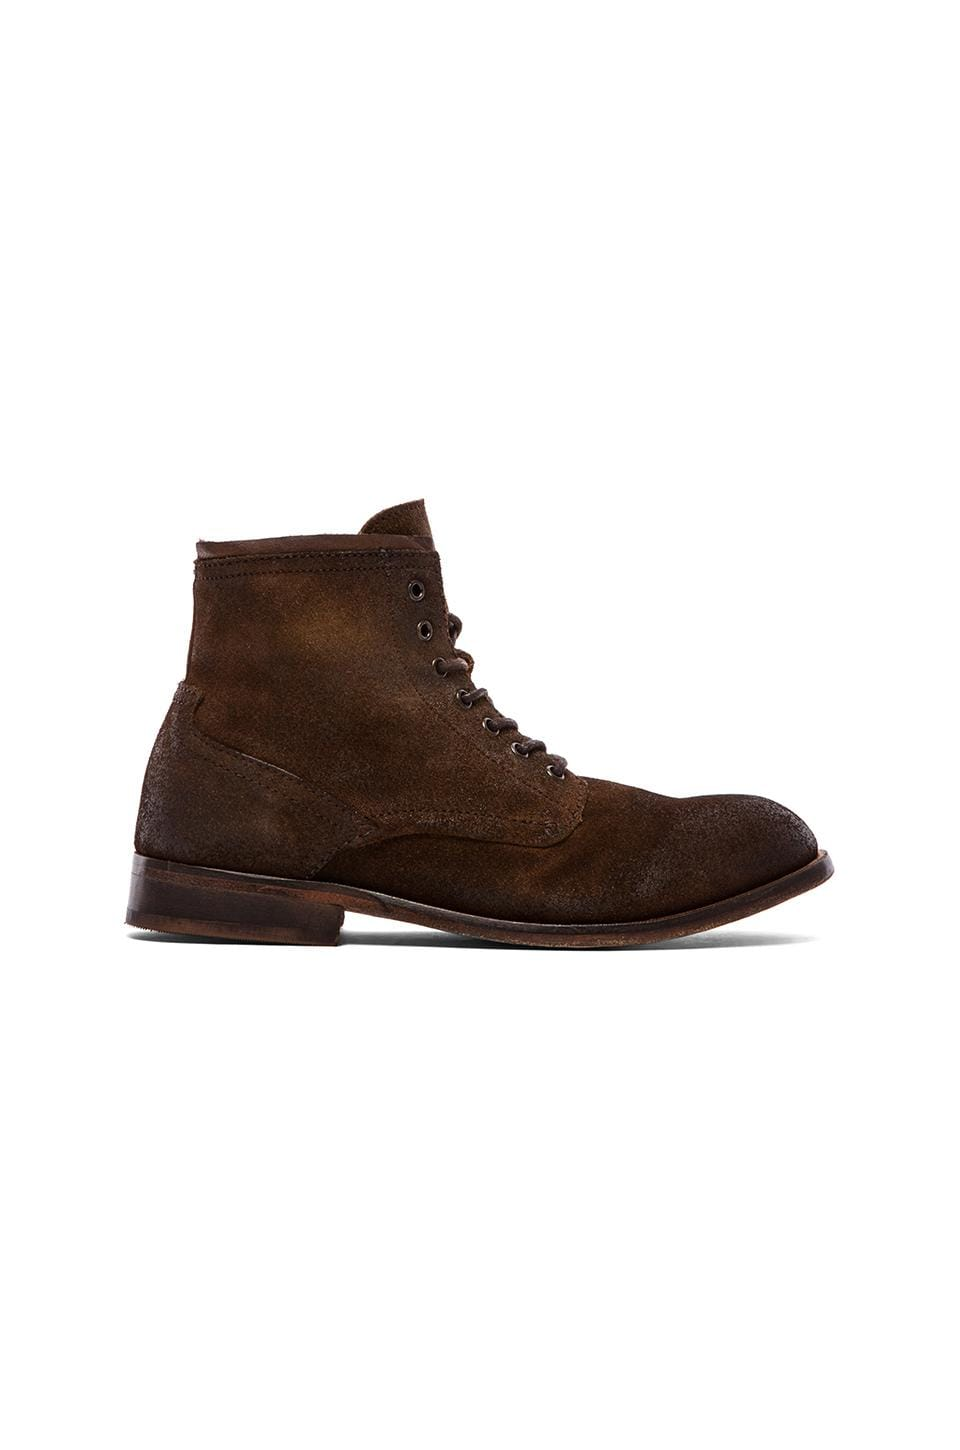 H by Hudson Railton in Brown Suede